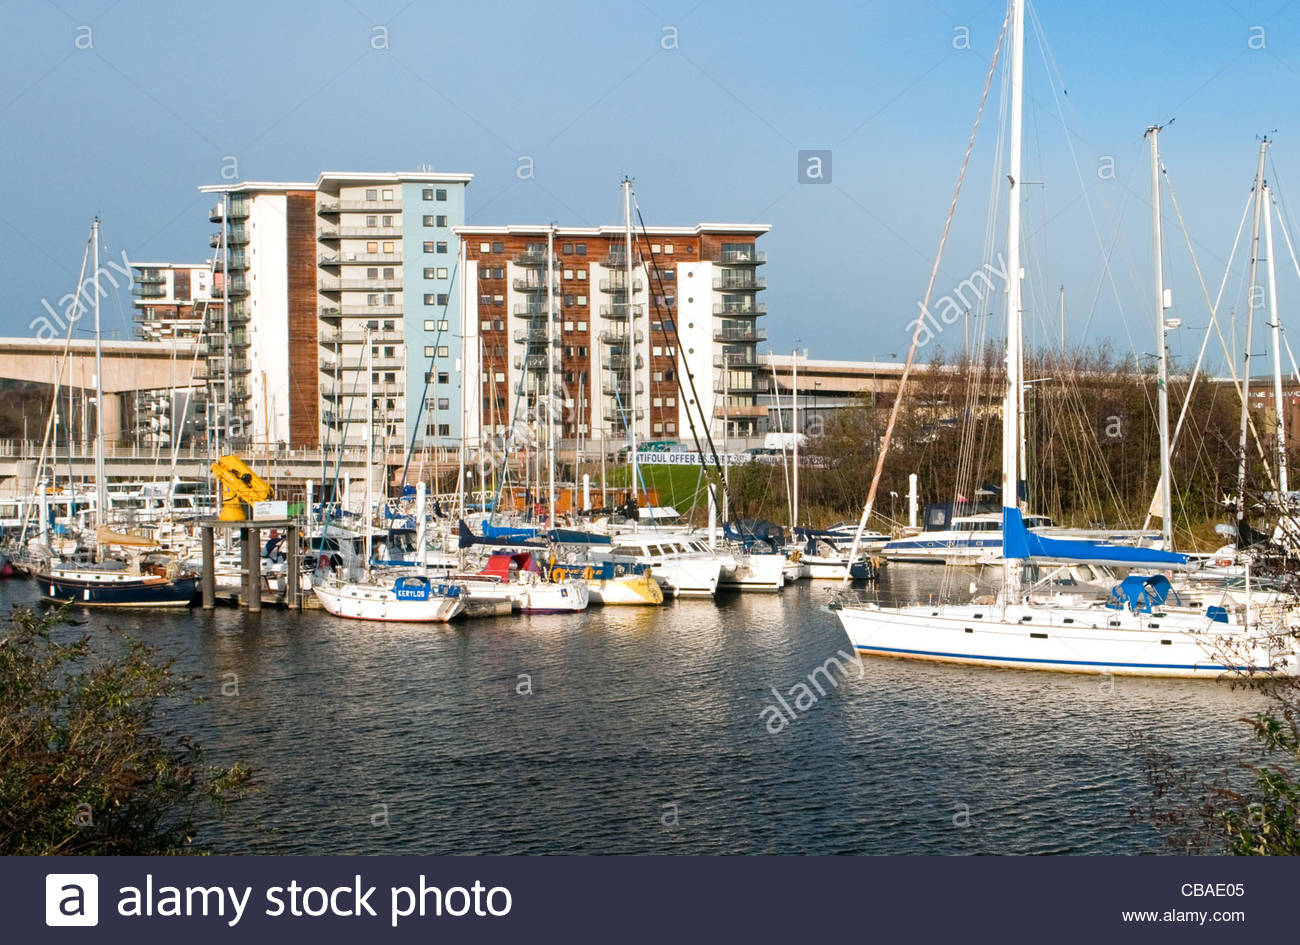 Cardiff Bay South Wales, Cardiff Marina, on the River Ely near Cardiff Bay south Wales UK ...